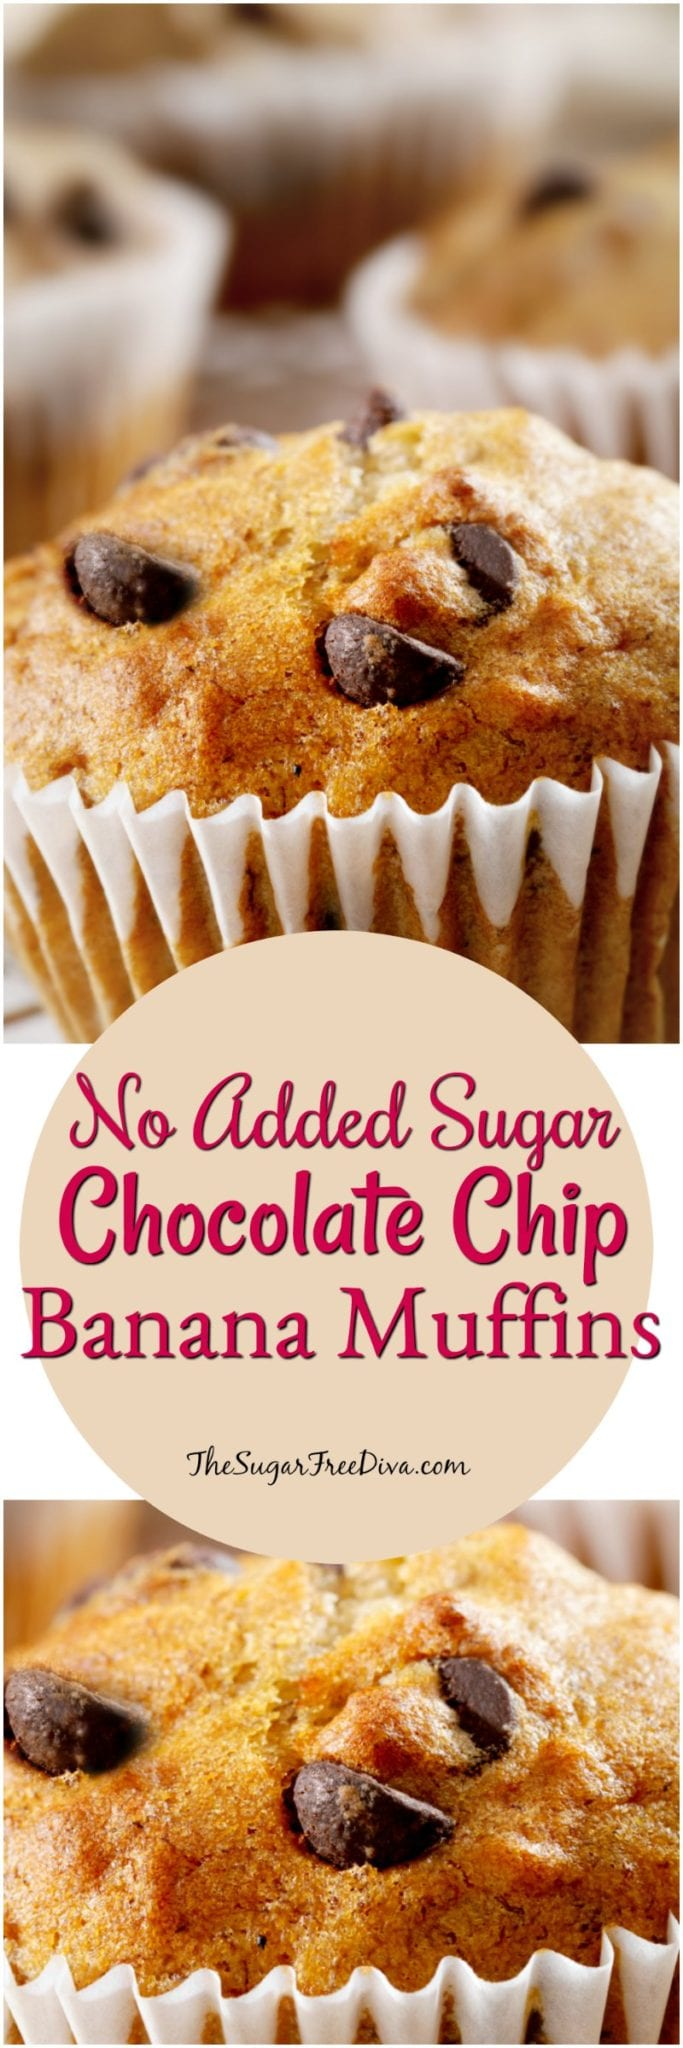 No Sugar Added Chocolate Chip Banana Muffins